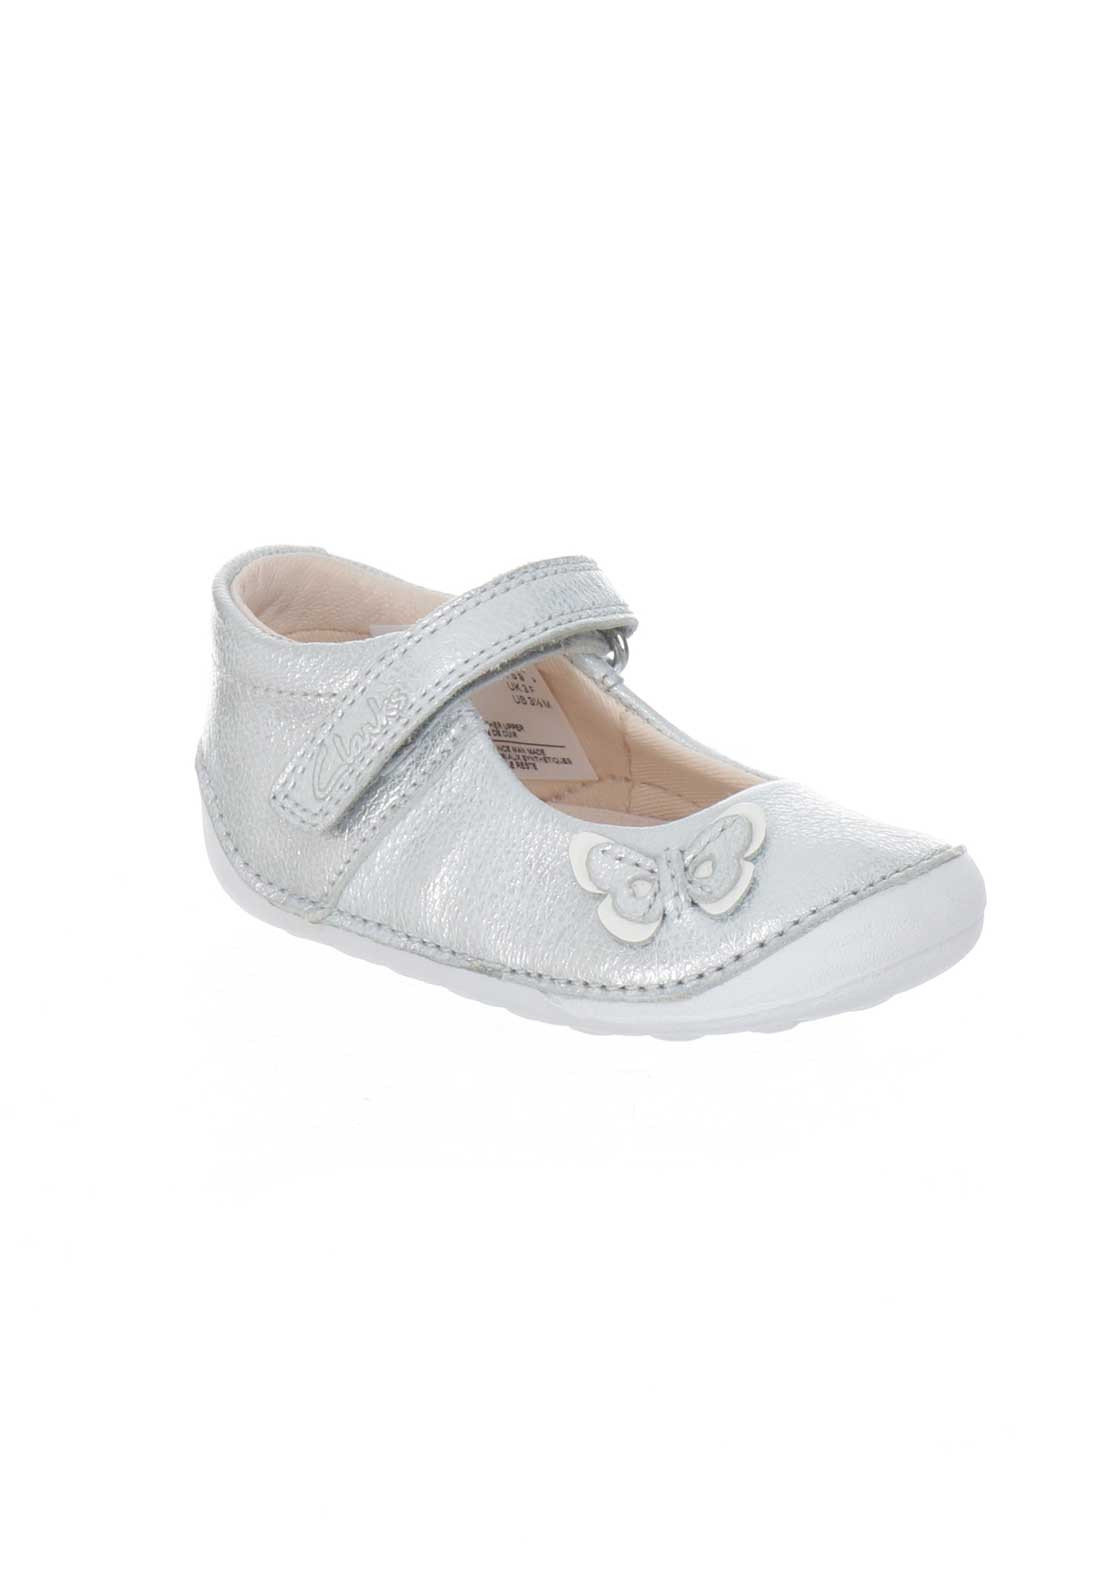 4b61861488c8 Clarks Baby Girls Leather Little Mia Pre Shoes